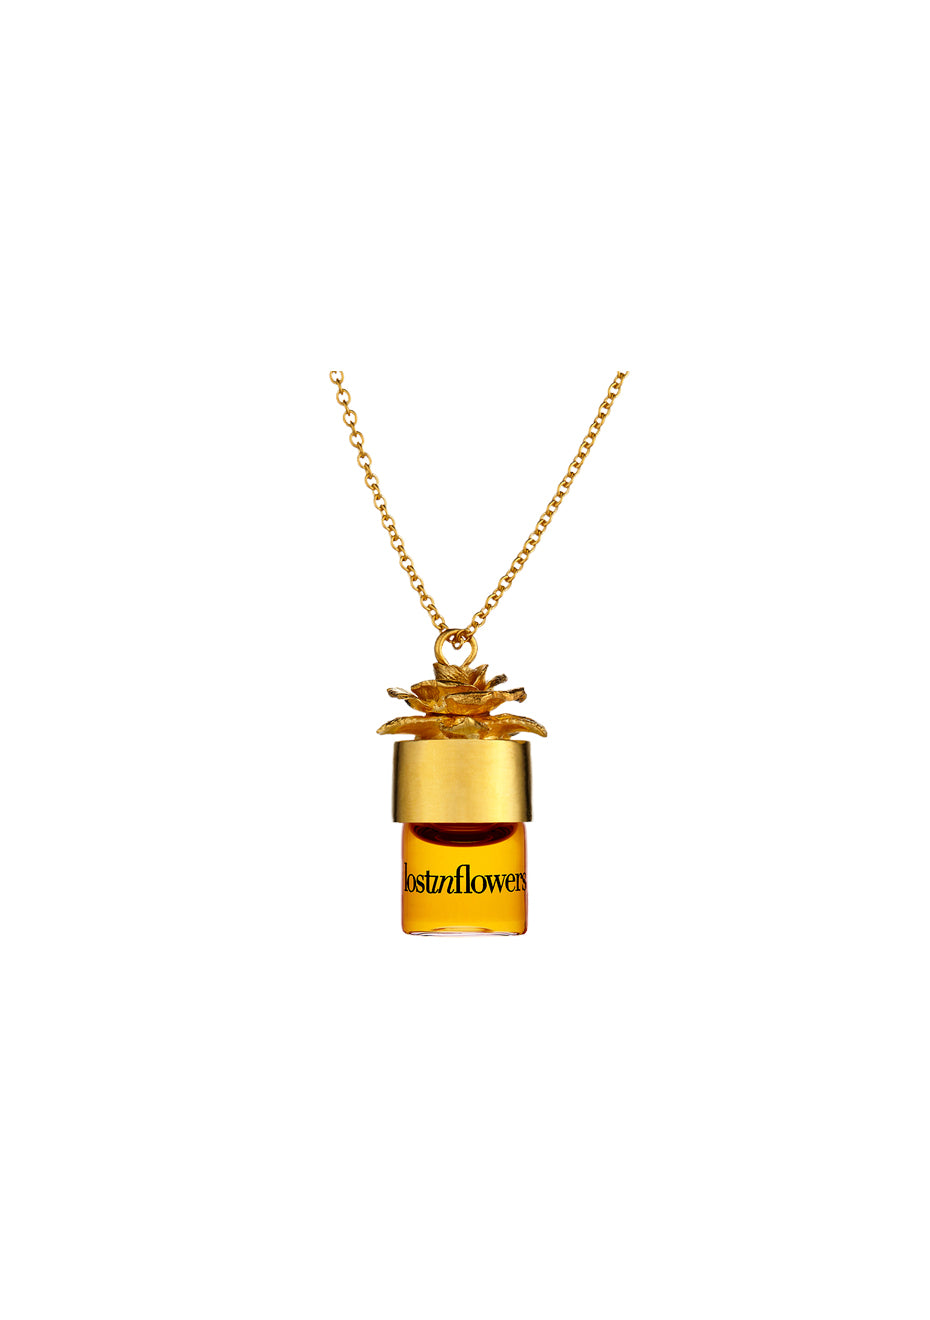 Lostinflowers Pure Perfume Oil Necklace 1.25 ml